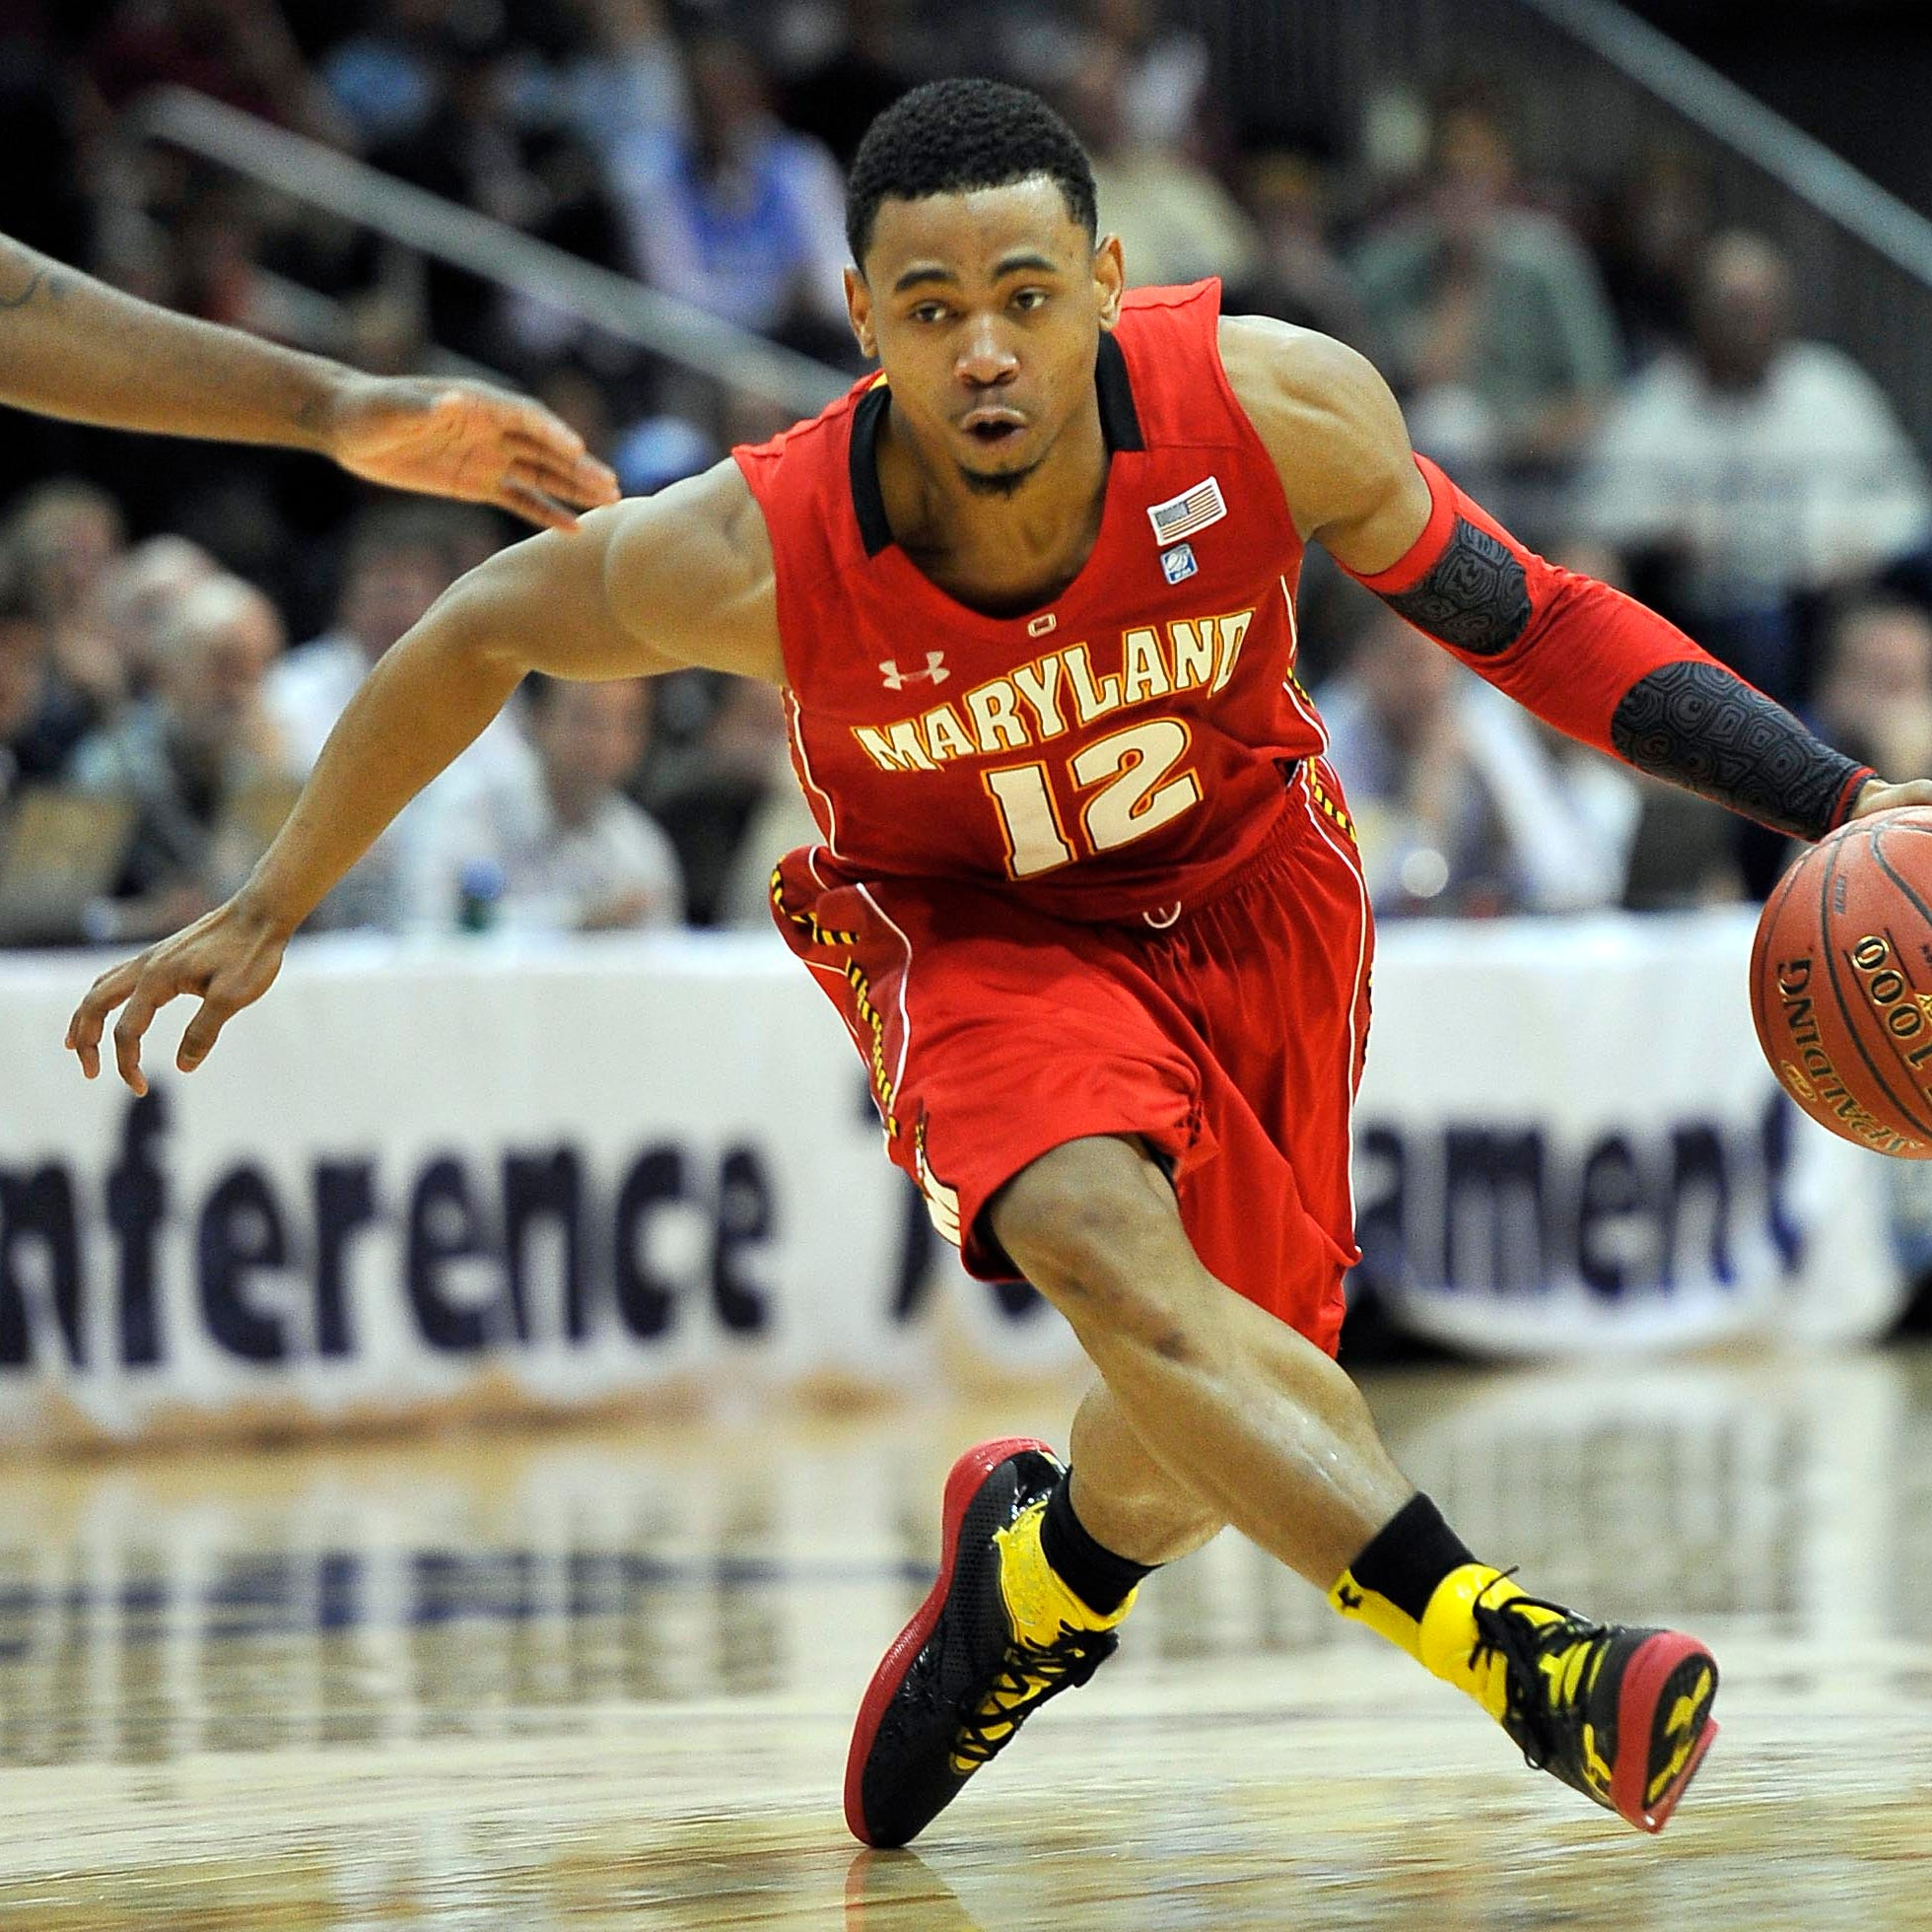 Former Maryland hoops standout Terrell Stoglin punts ball into stands, flips off crowd